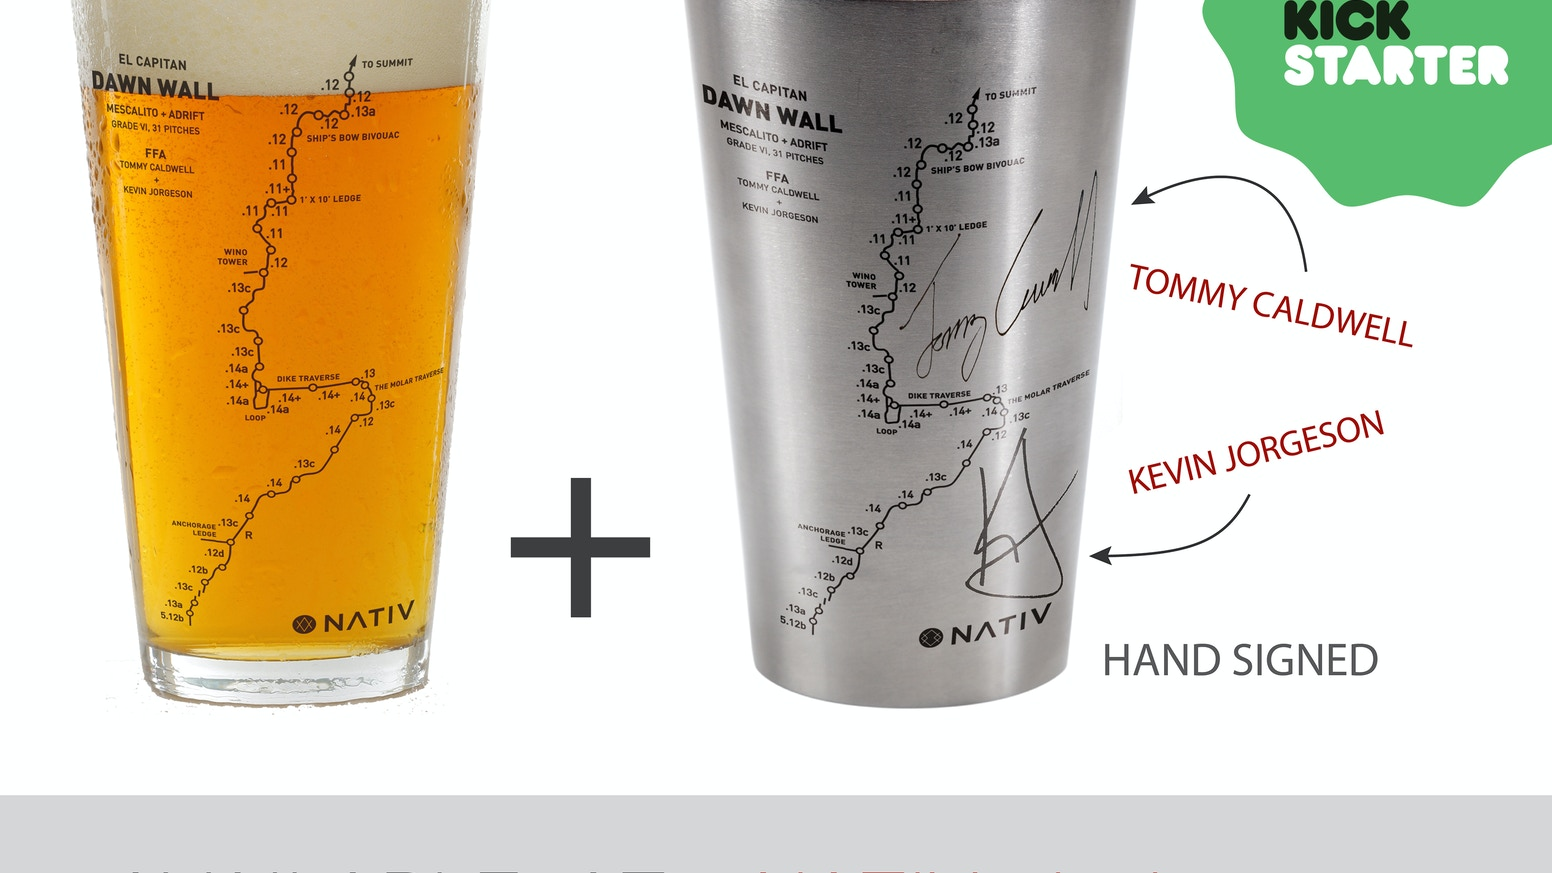 Capture the topo of the infamously difficult Dawn Wall free climb, on a sustainable pint GLASS and stainless steel CUP.